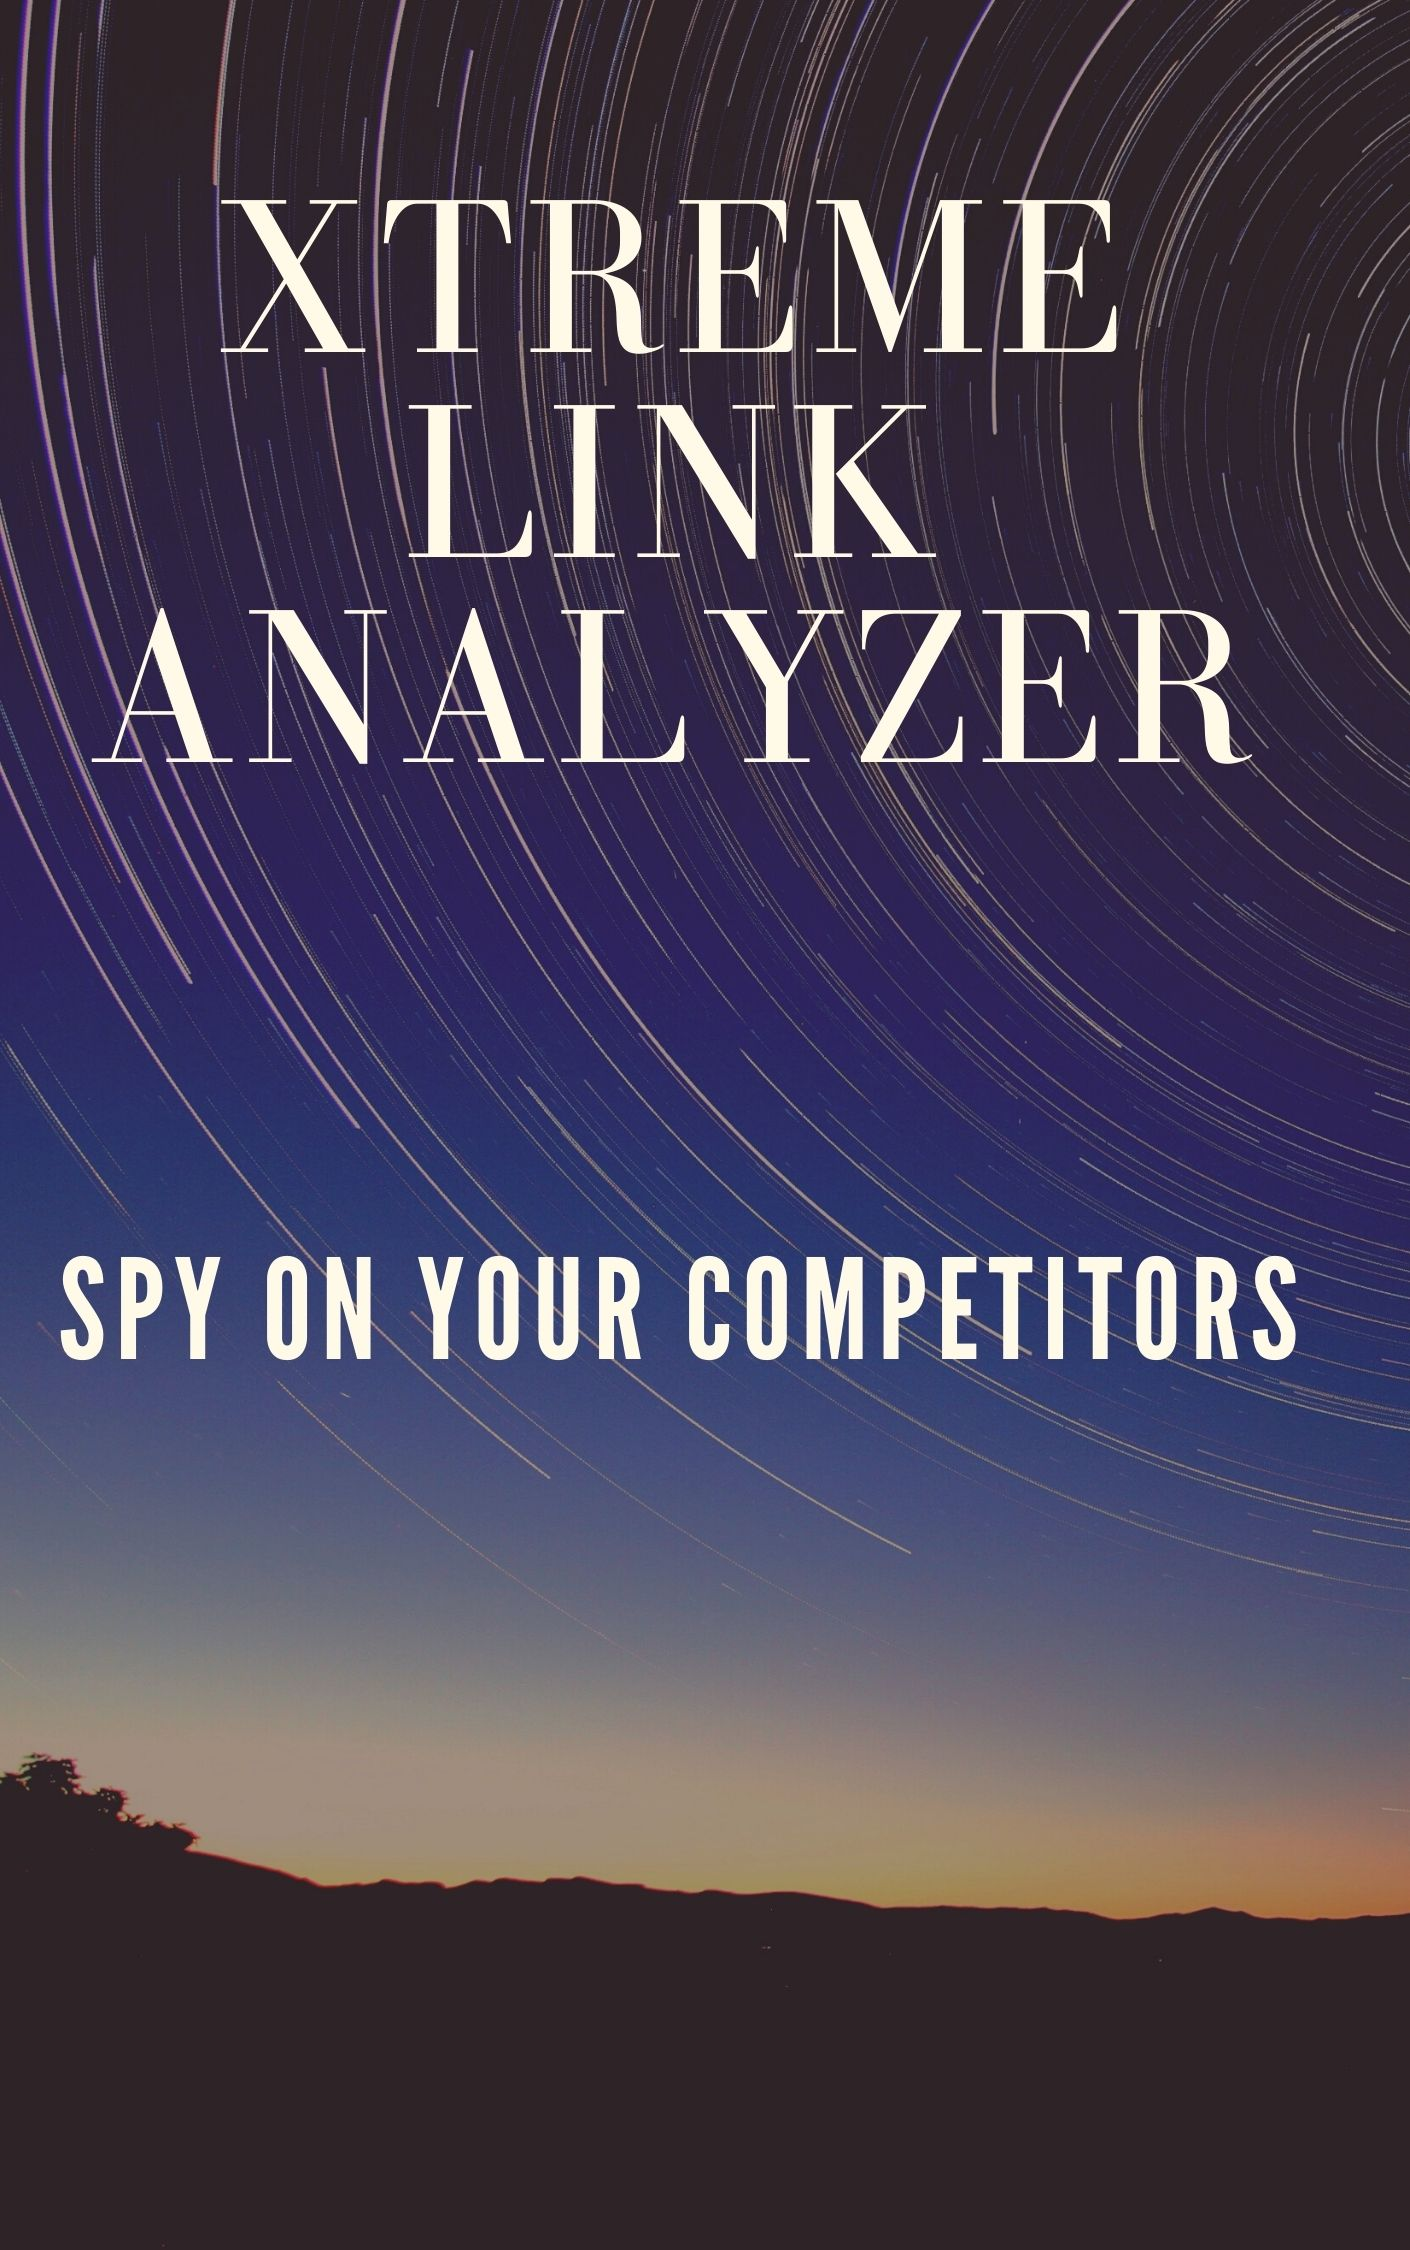 XTREME LINK ANALYZER is a software developed for spying on your competitors